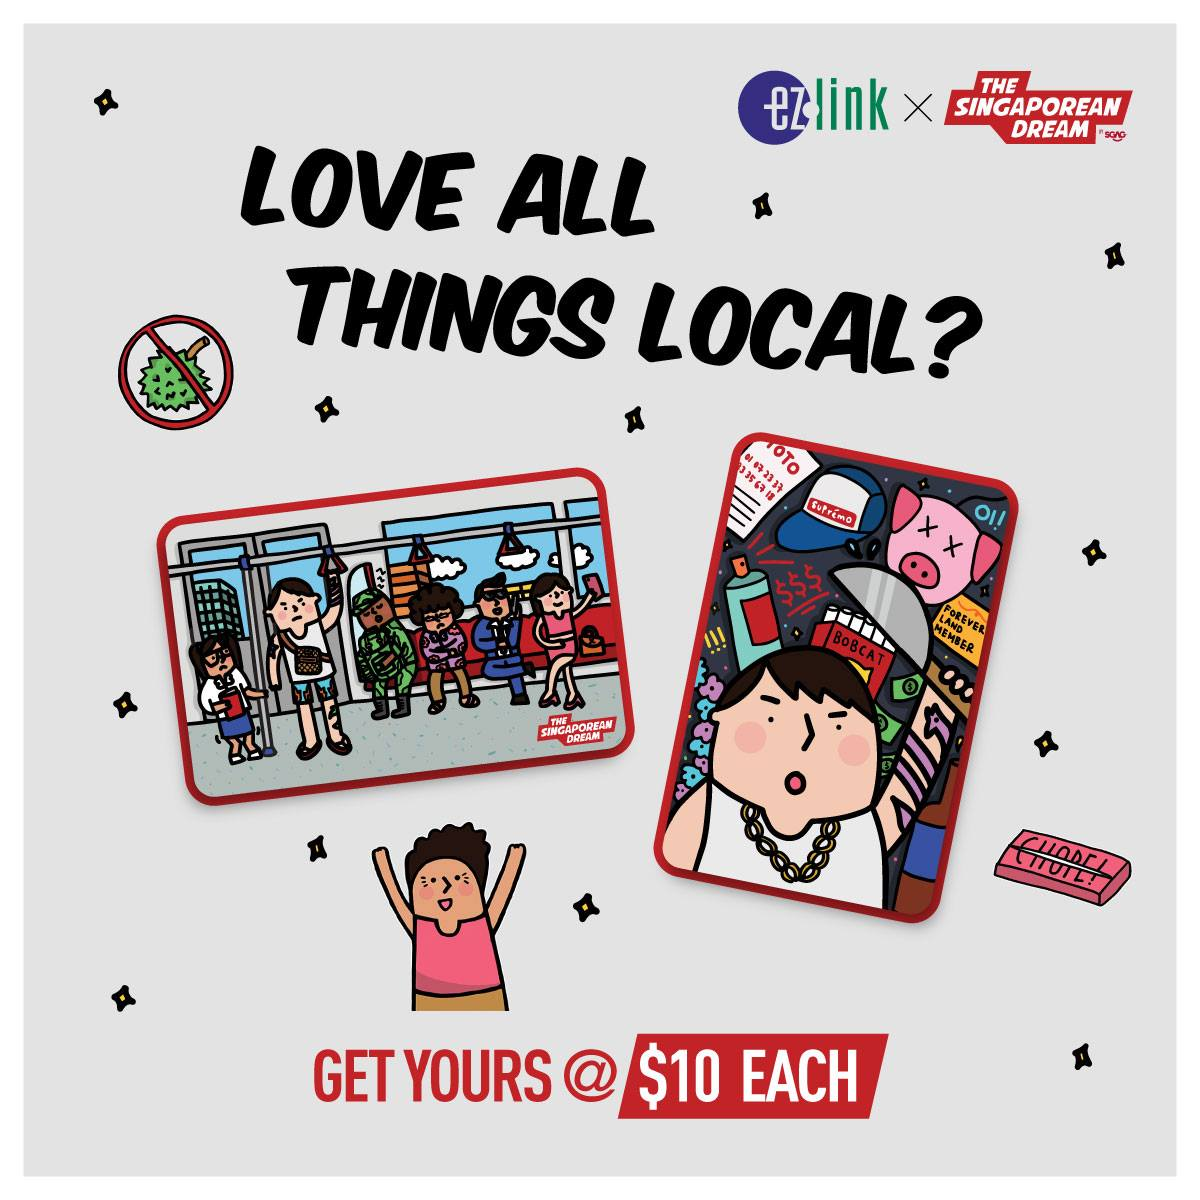 From One Piece to Hello Kitty to Star Wars to SGAG - get these exclusive EZ-Charms from EZ-Link's official store on Shopee - Alvinology